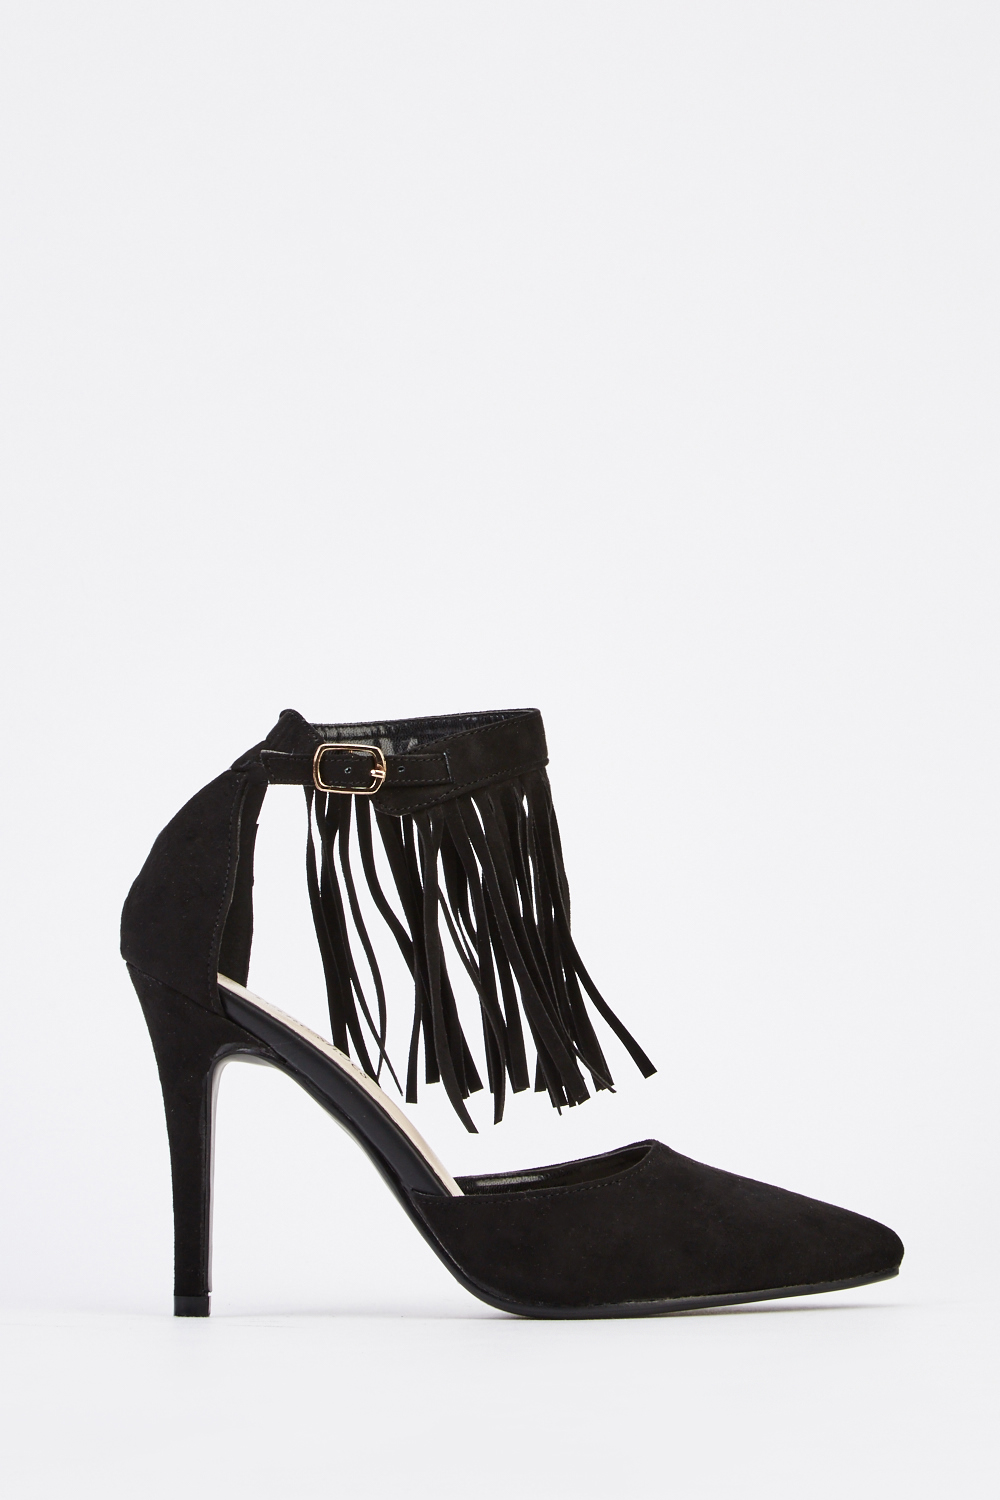 613551a048 Fringed Front Court Heels - Black - Just £5